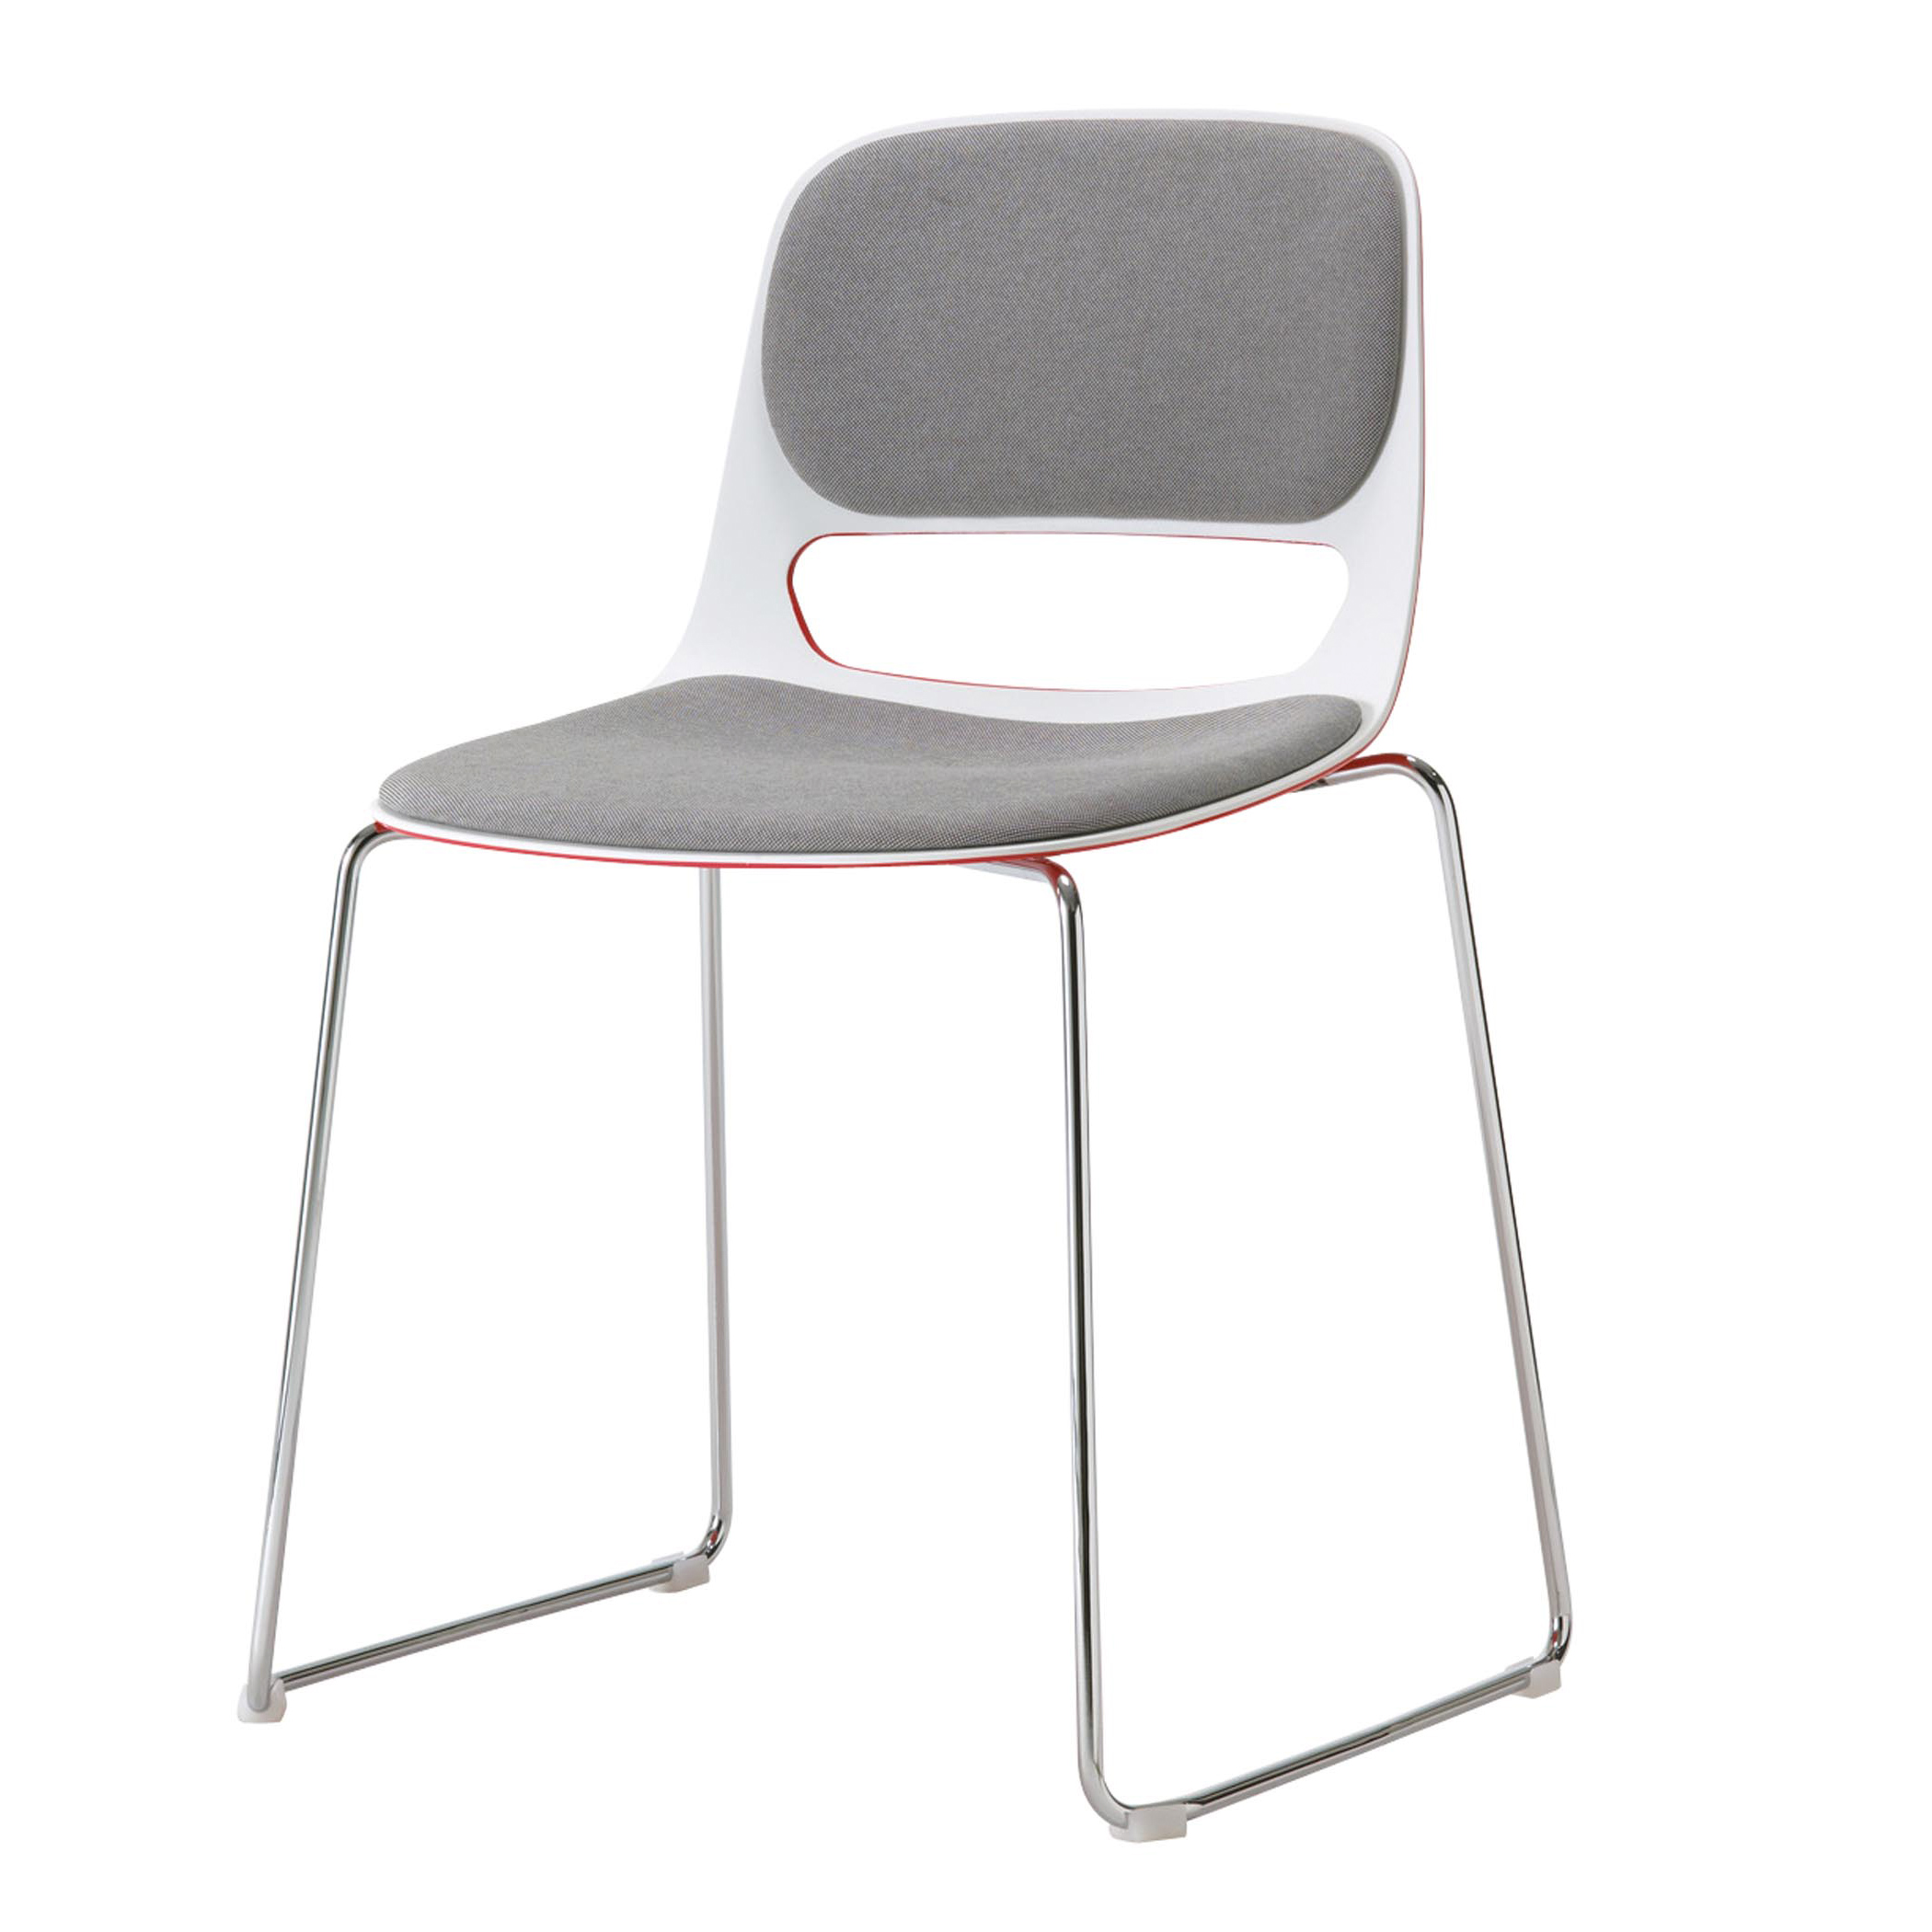 Sled Base Chair Glides Contemporary Dining Chair Sled